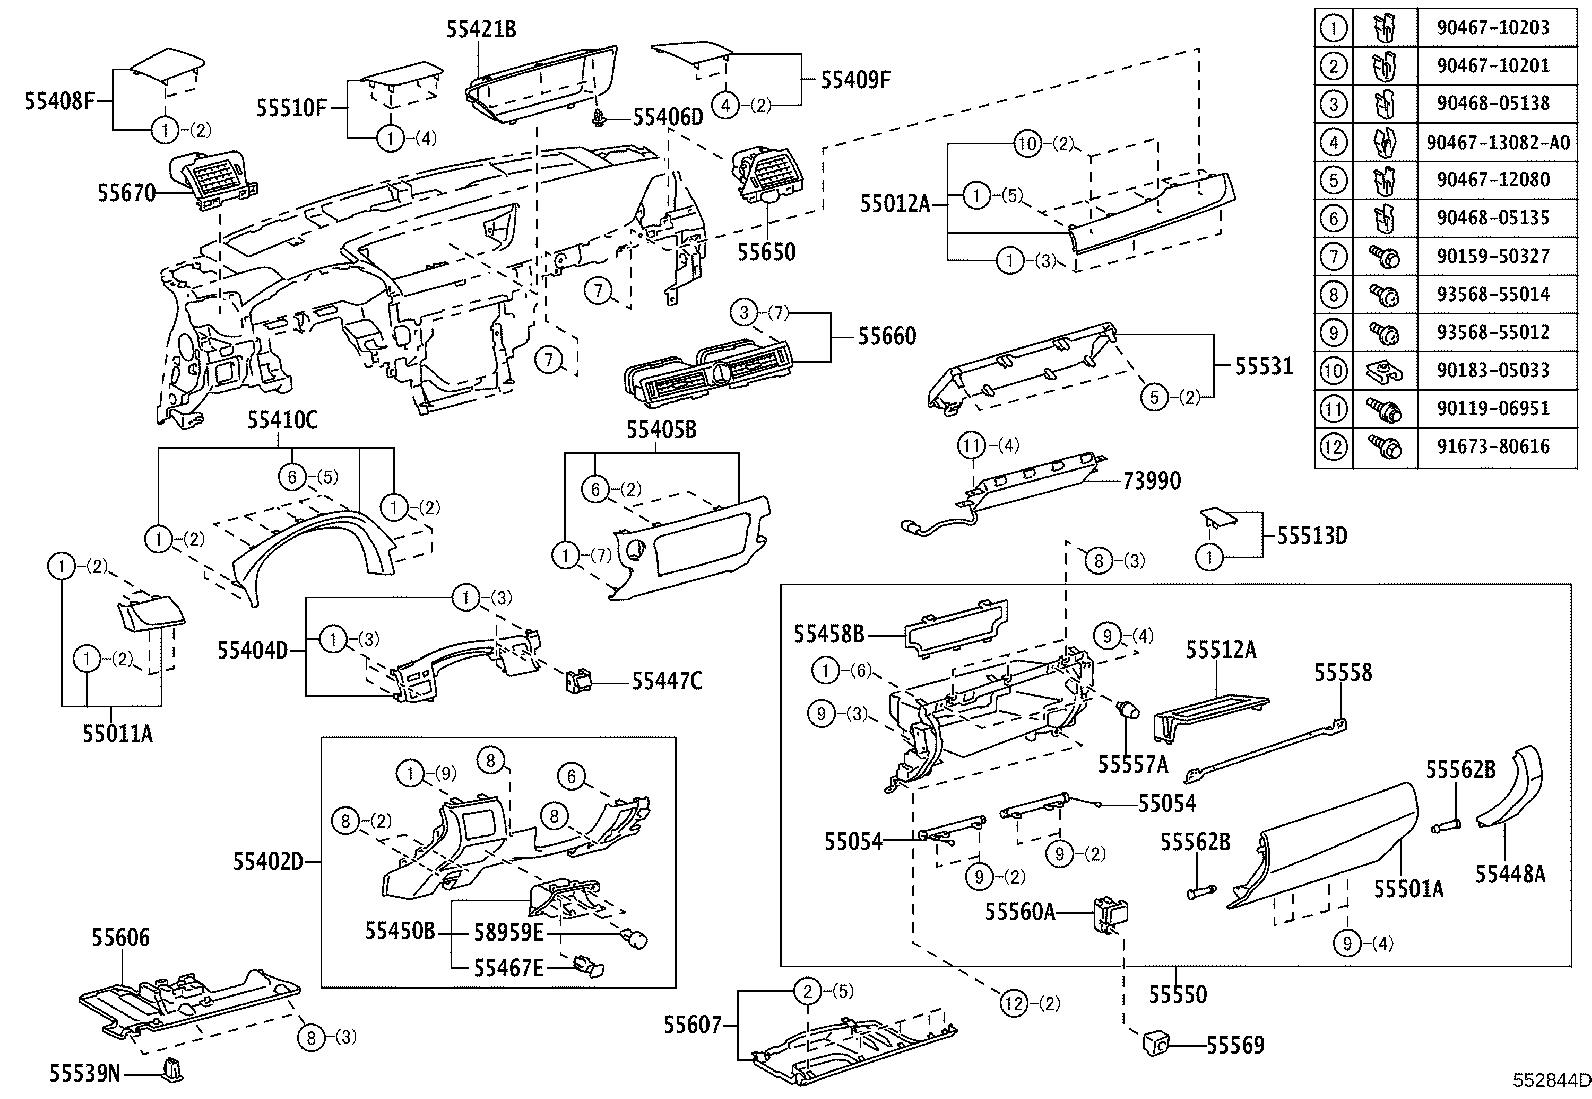 Lexus GS 350 Panel sub-assembly, instrument cluster finish